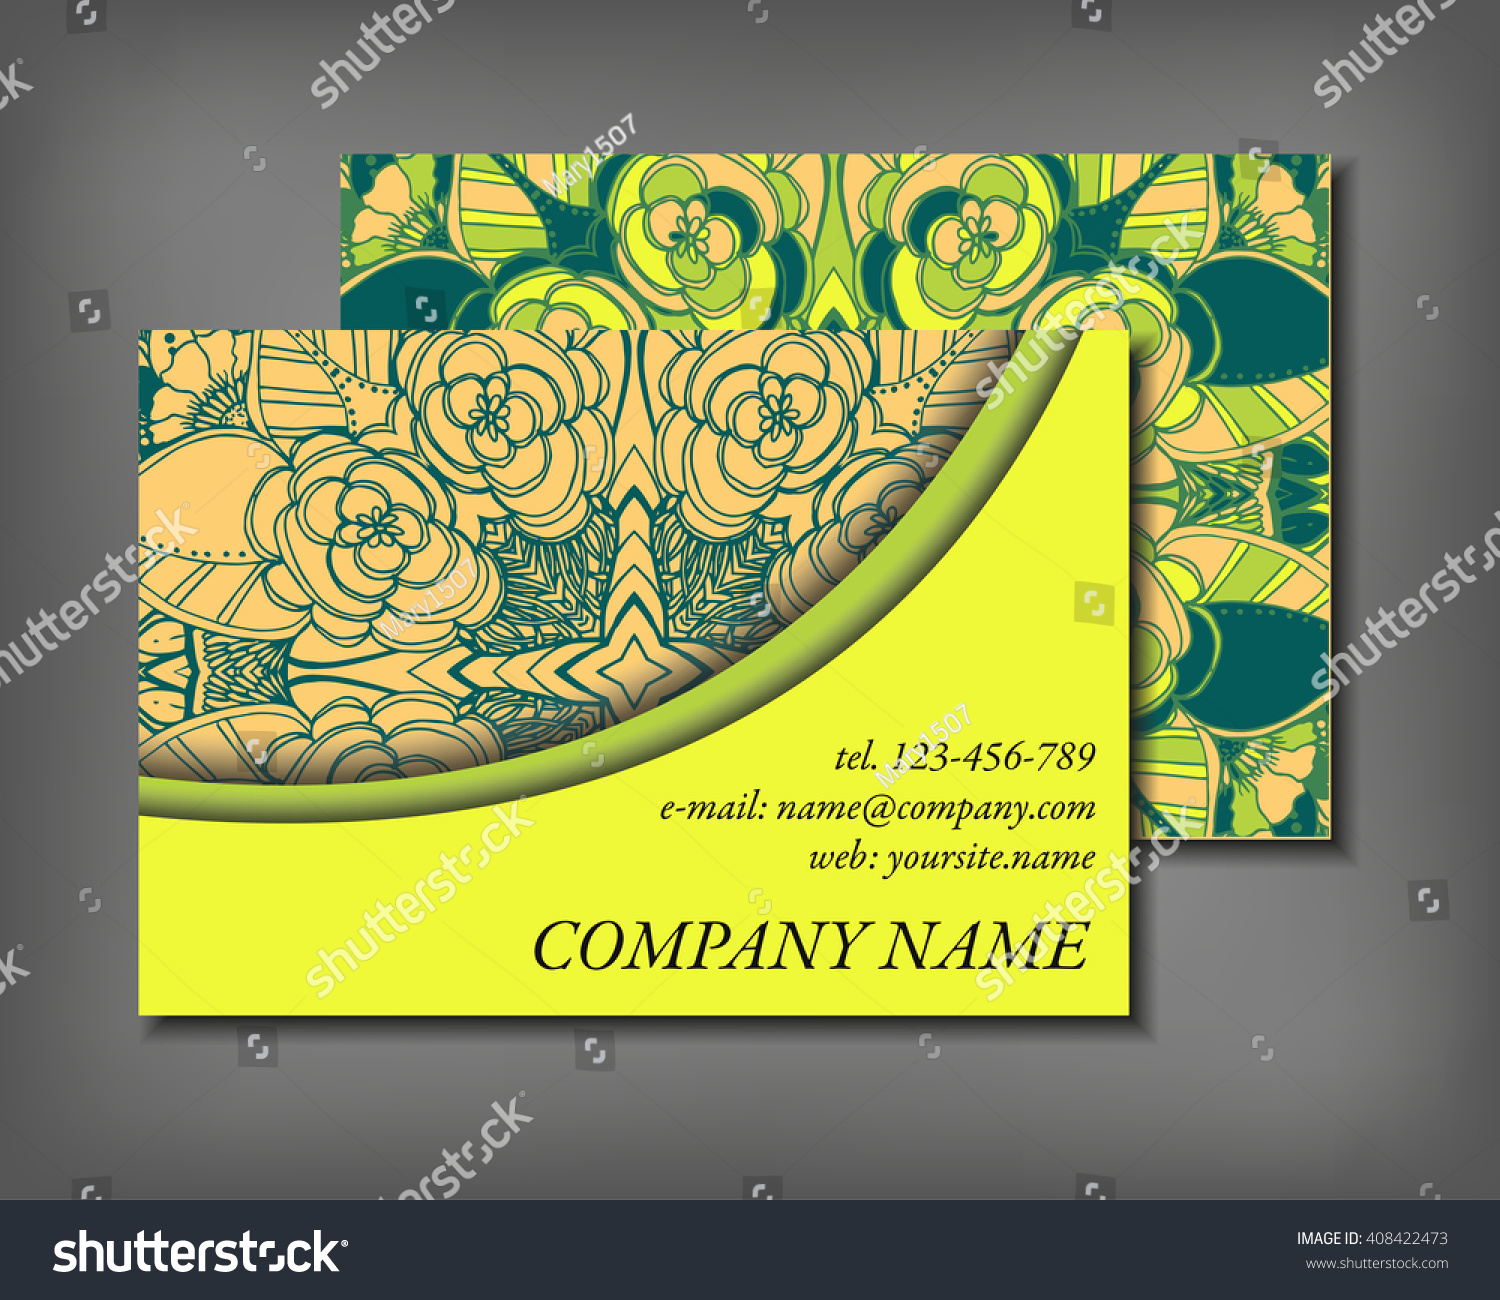 Set Business Card Template Abstract Elegant Stock Vector